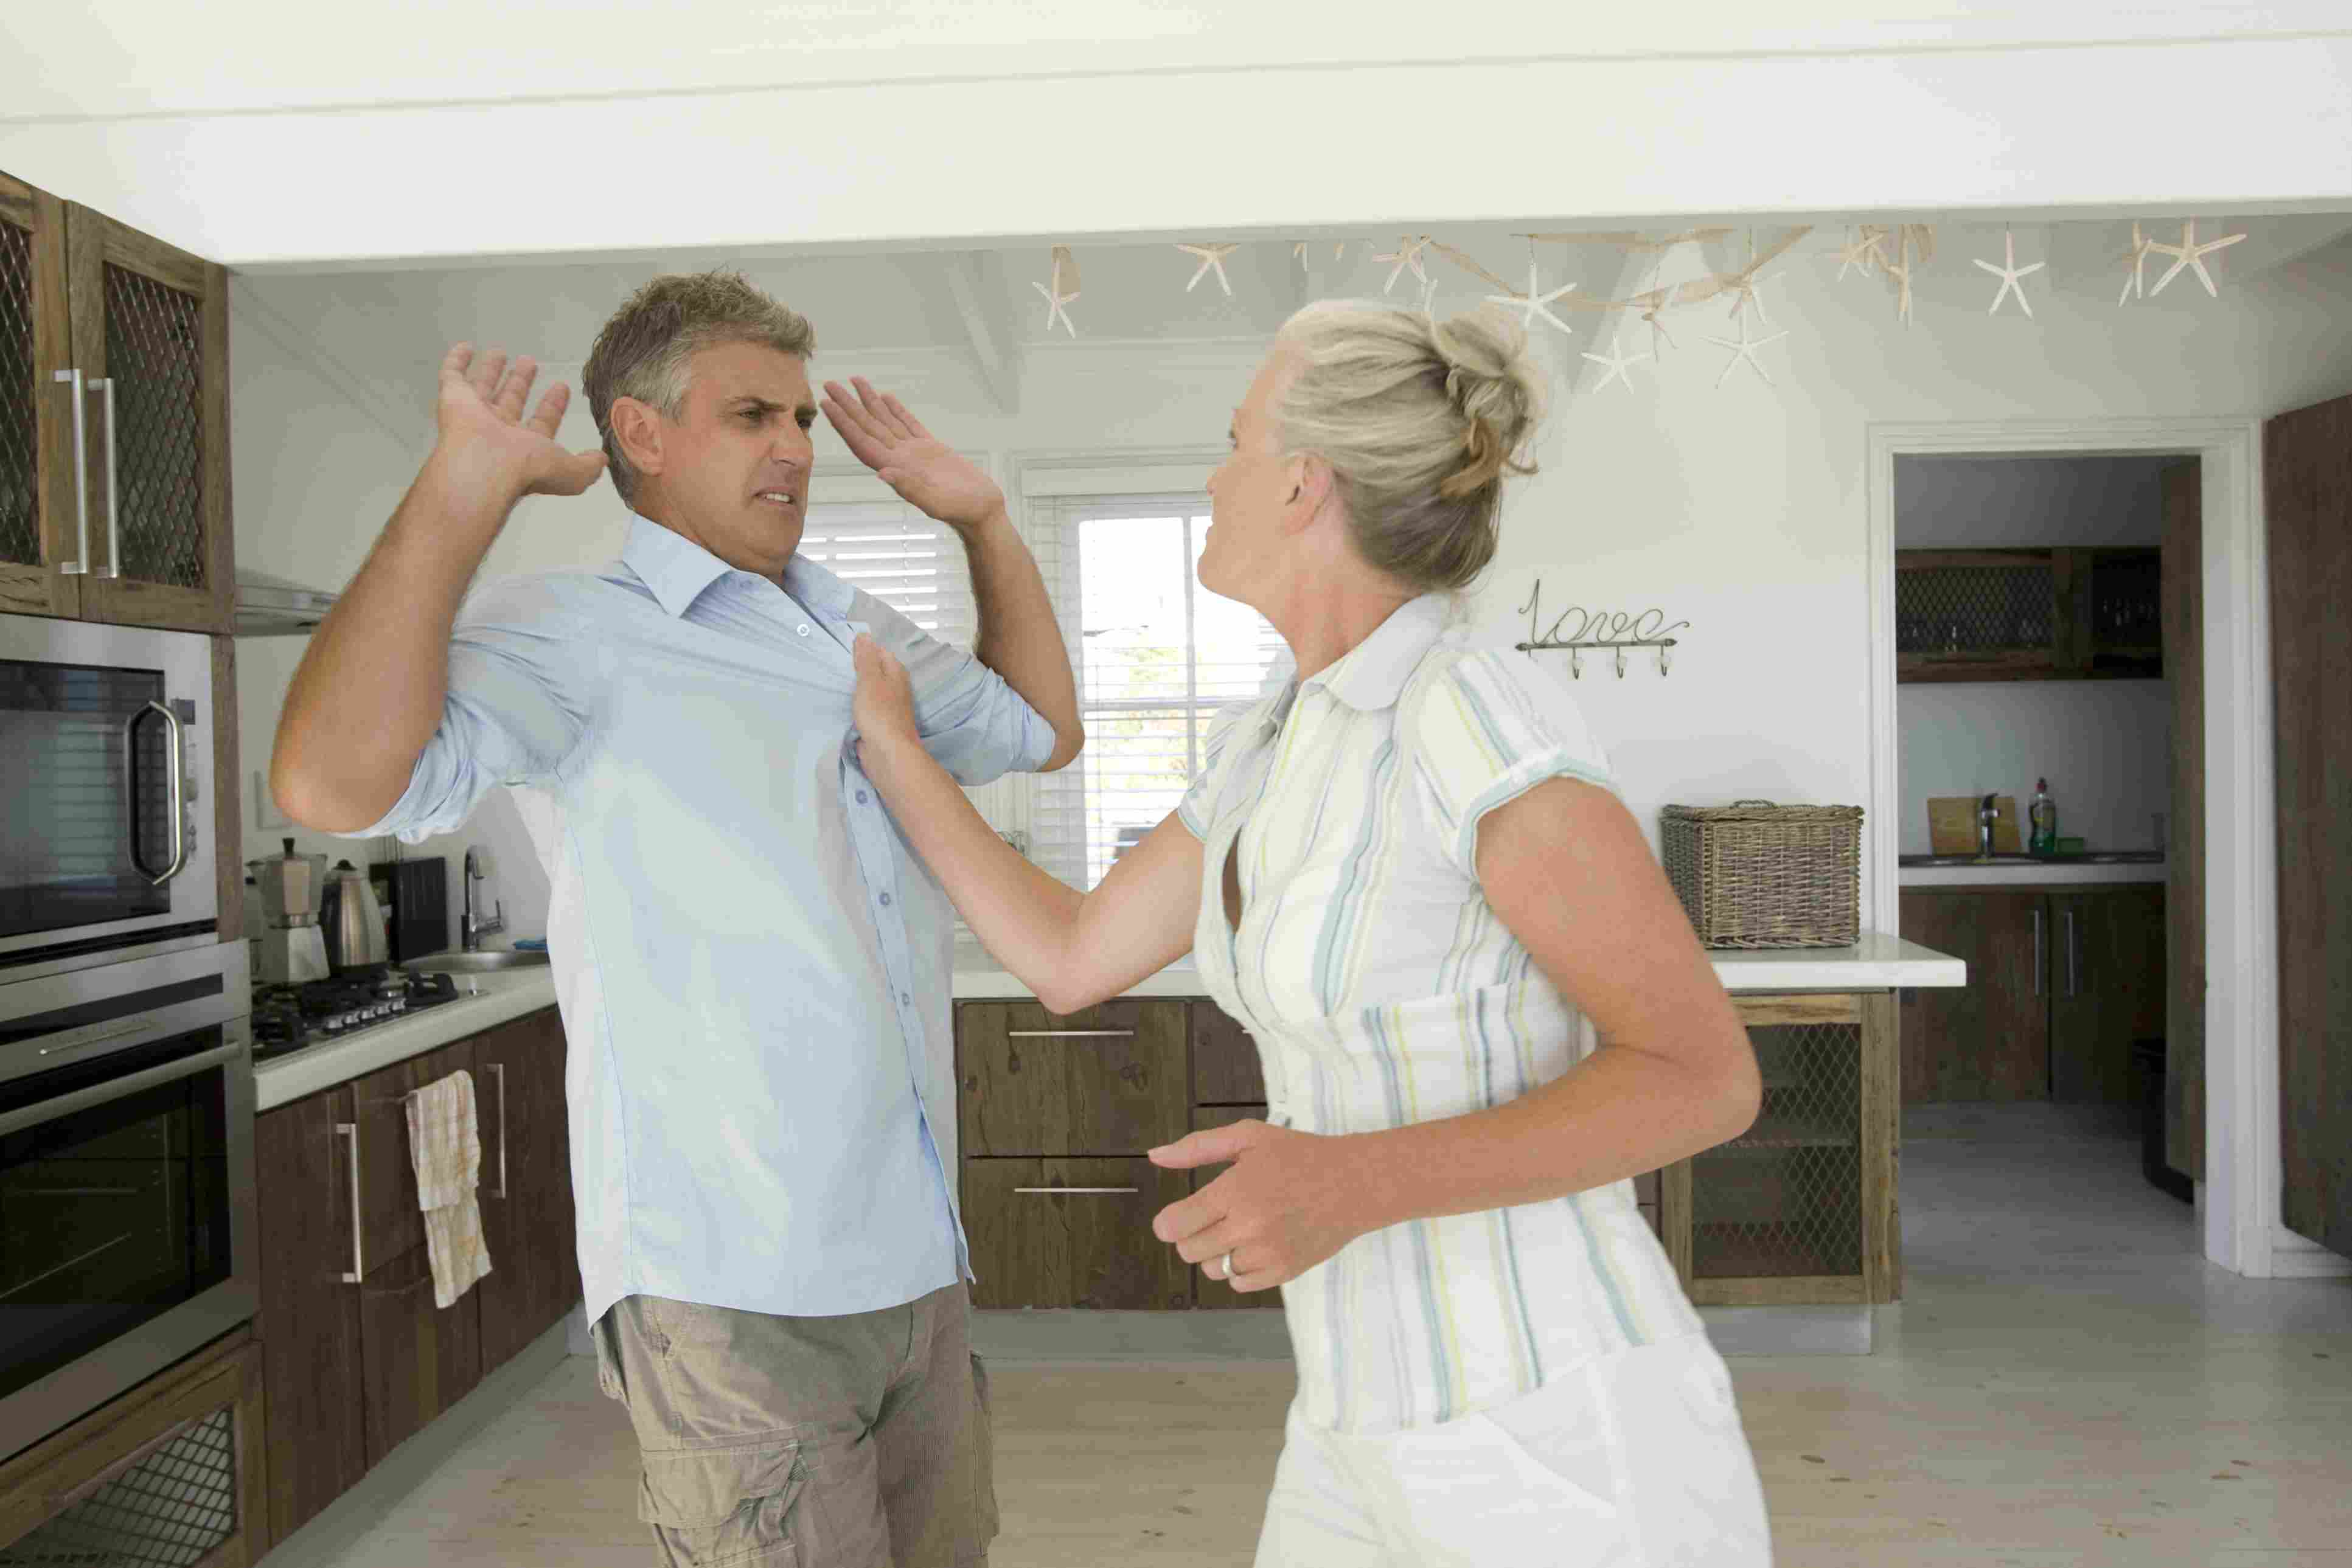 Mature couple fighting in kitchen